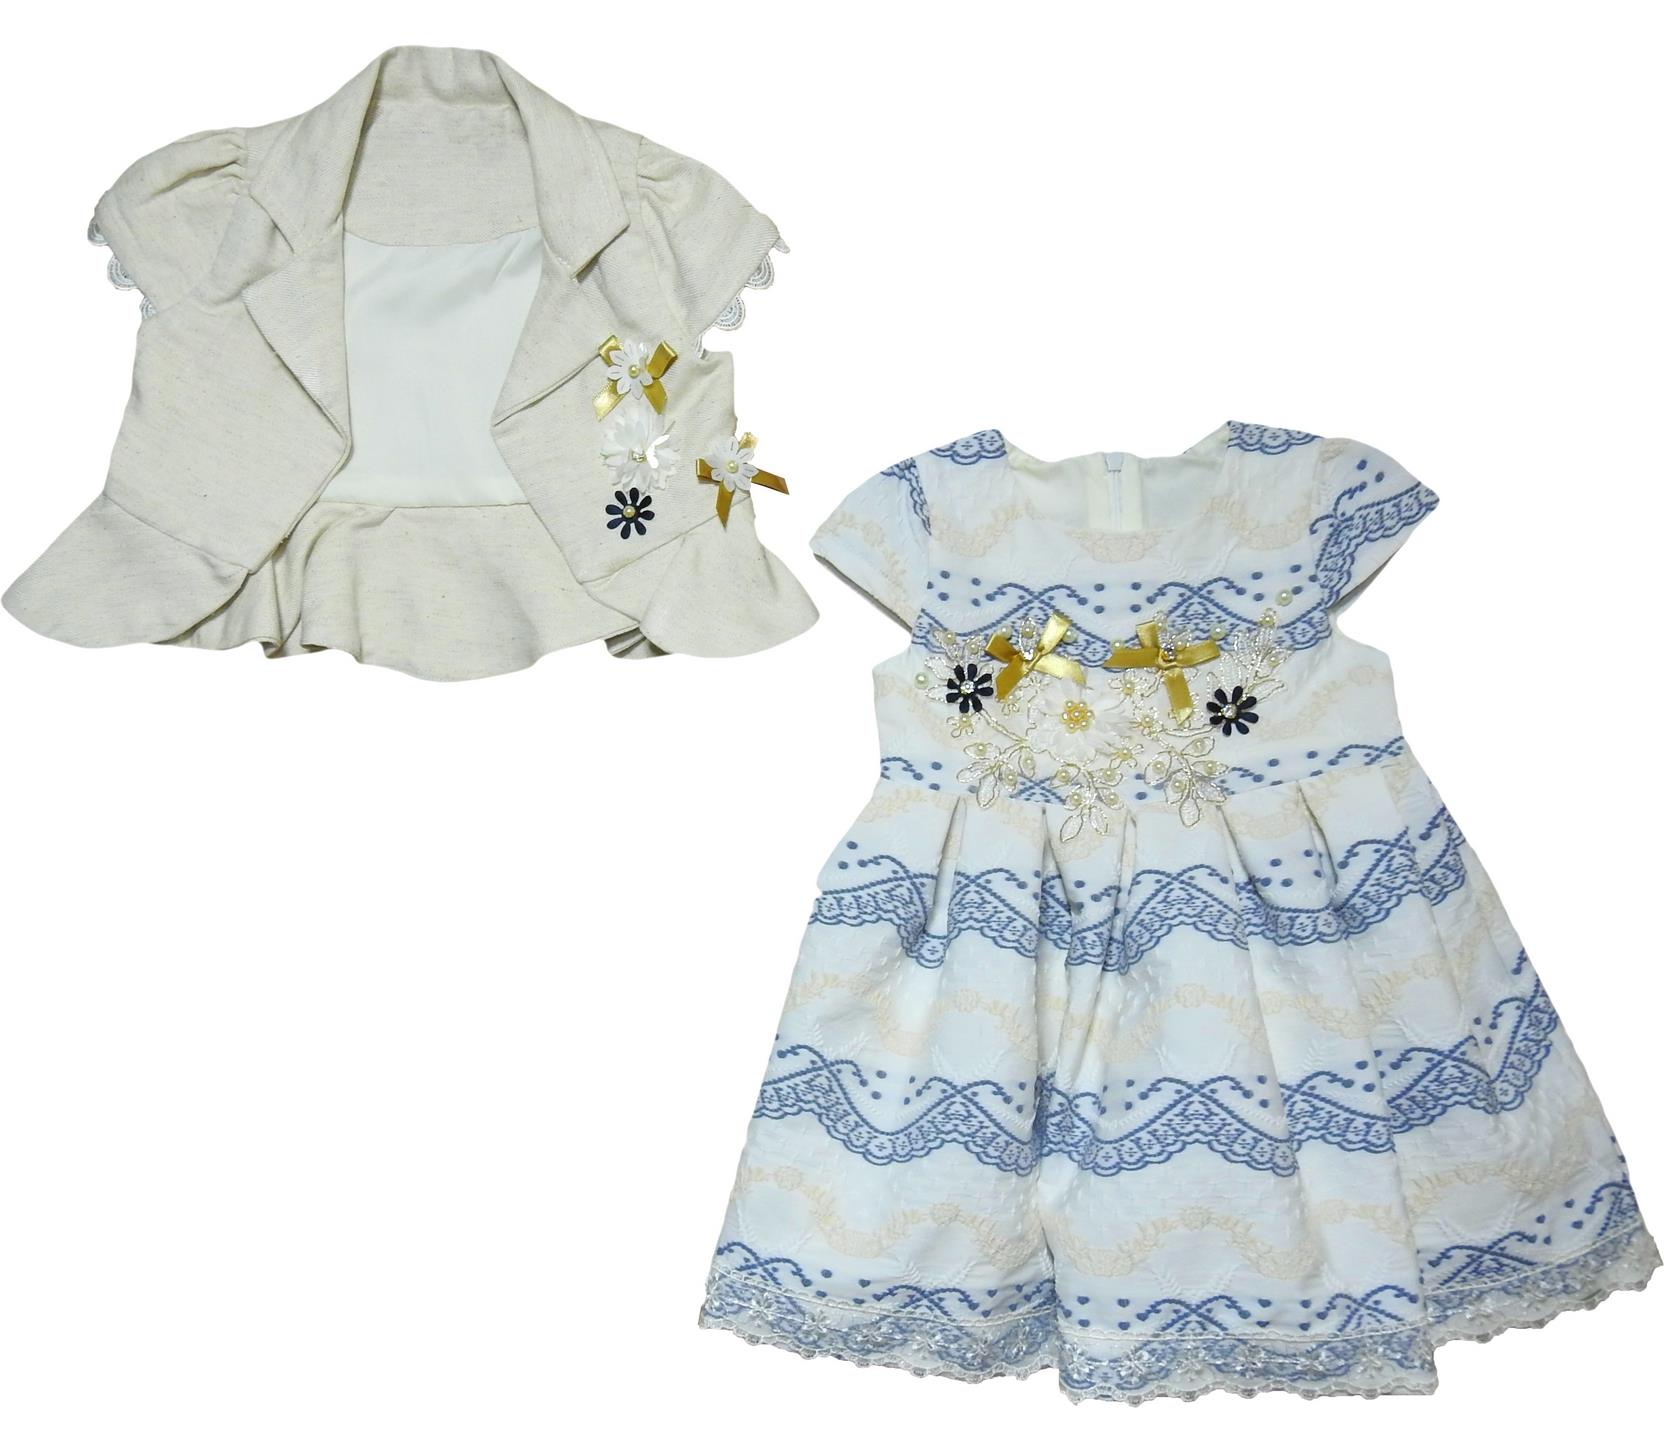 219 Wholesale embroidery dress with bolero set for girl children clothes (2-3-4-5 age)